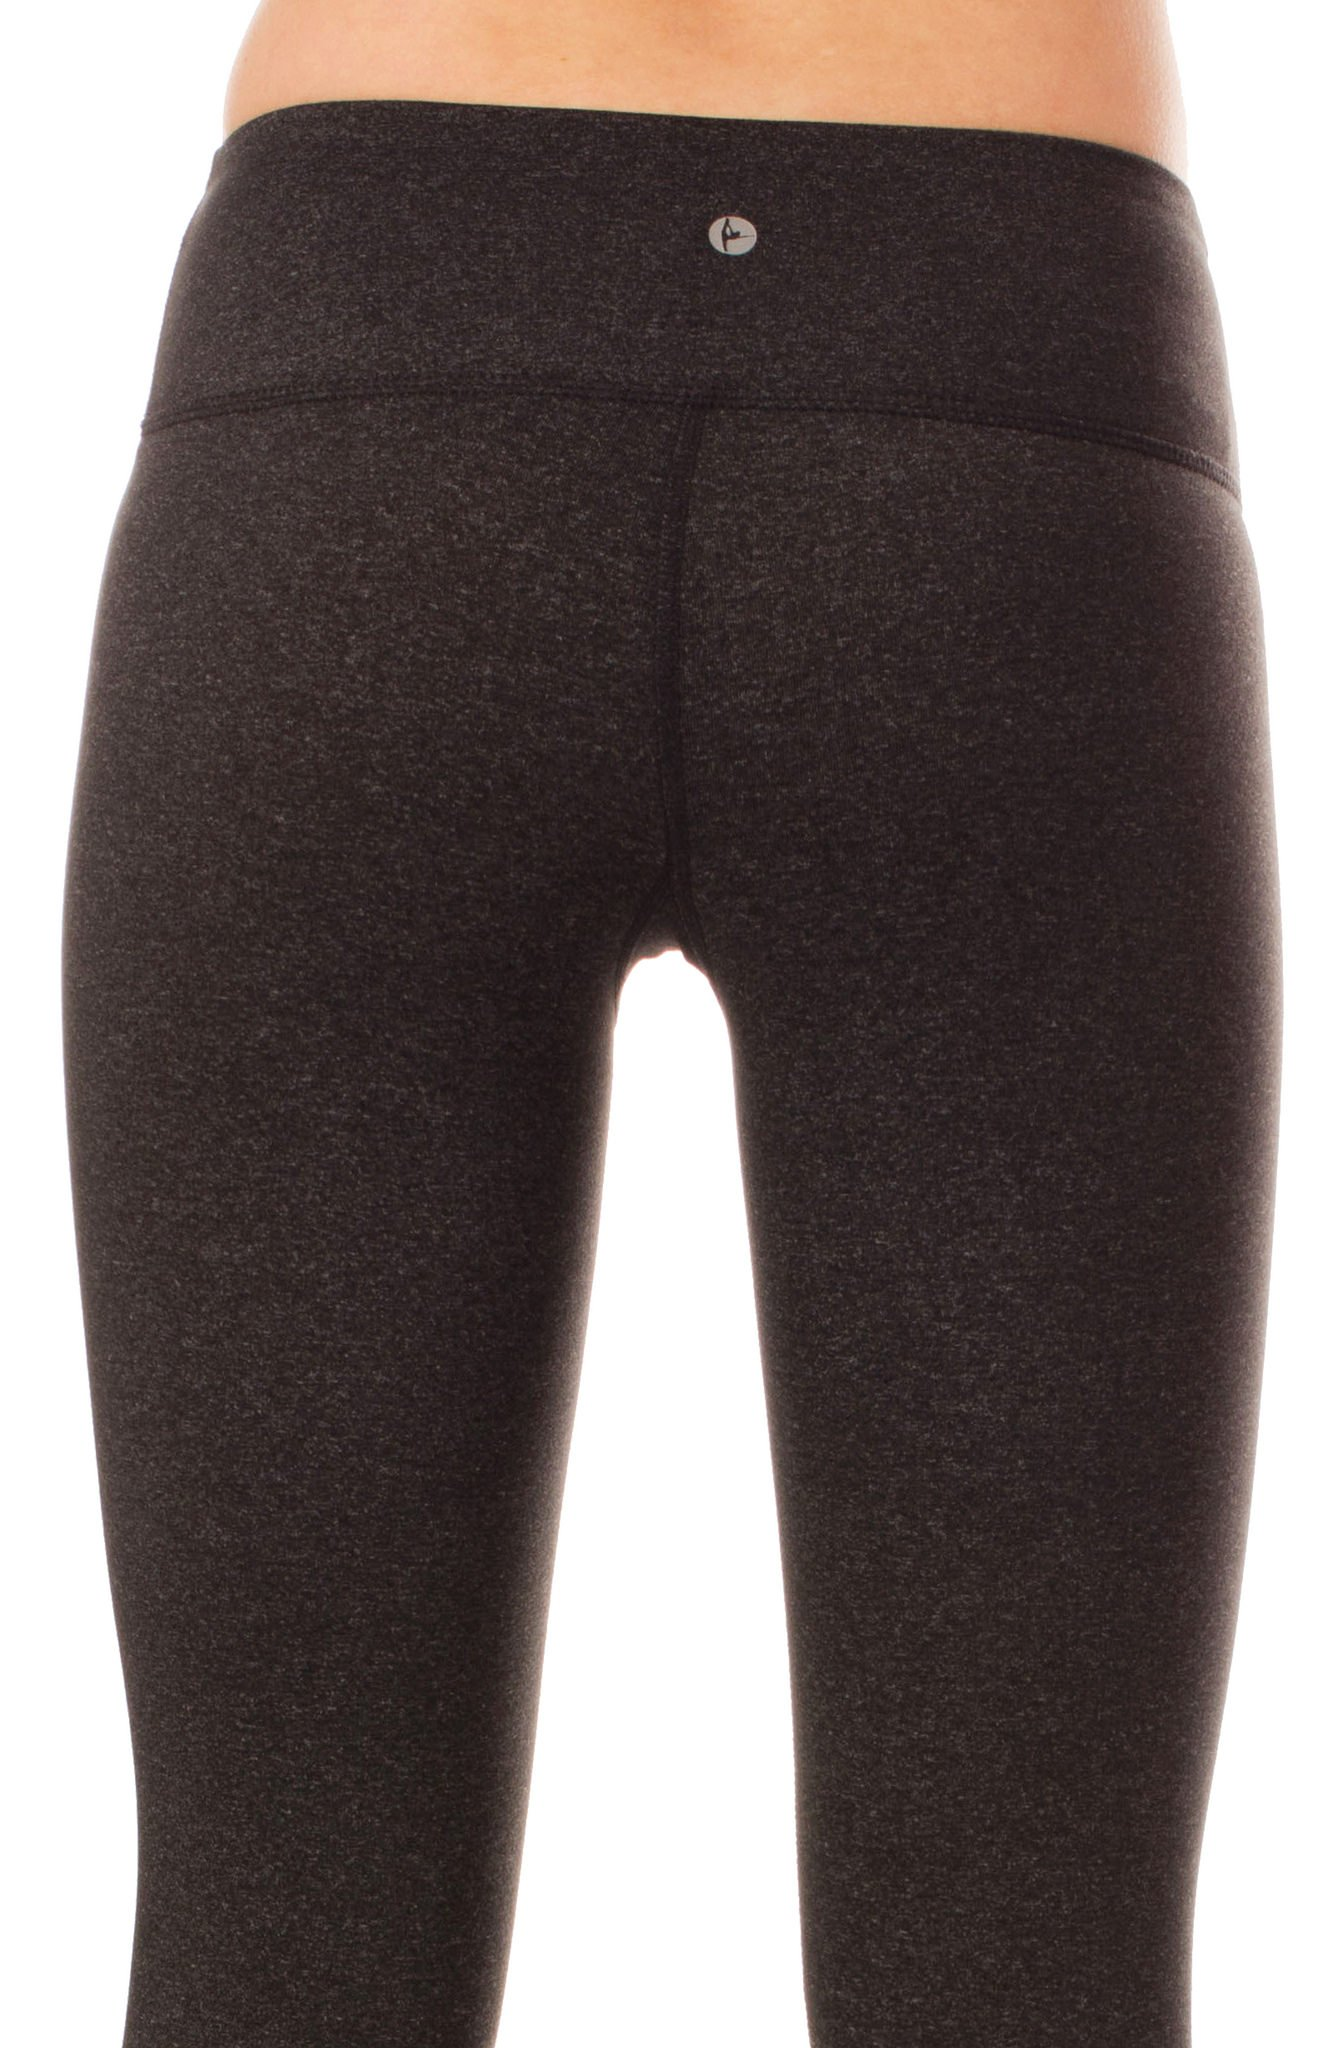 90 Degree By Reflex – Power Flex Yoga Capri – Cationic Heather Activewear Pants - Heather Charcoal XS by 90 Degree By Reflex (Image #5)